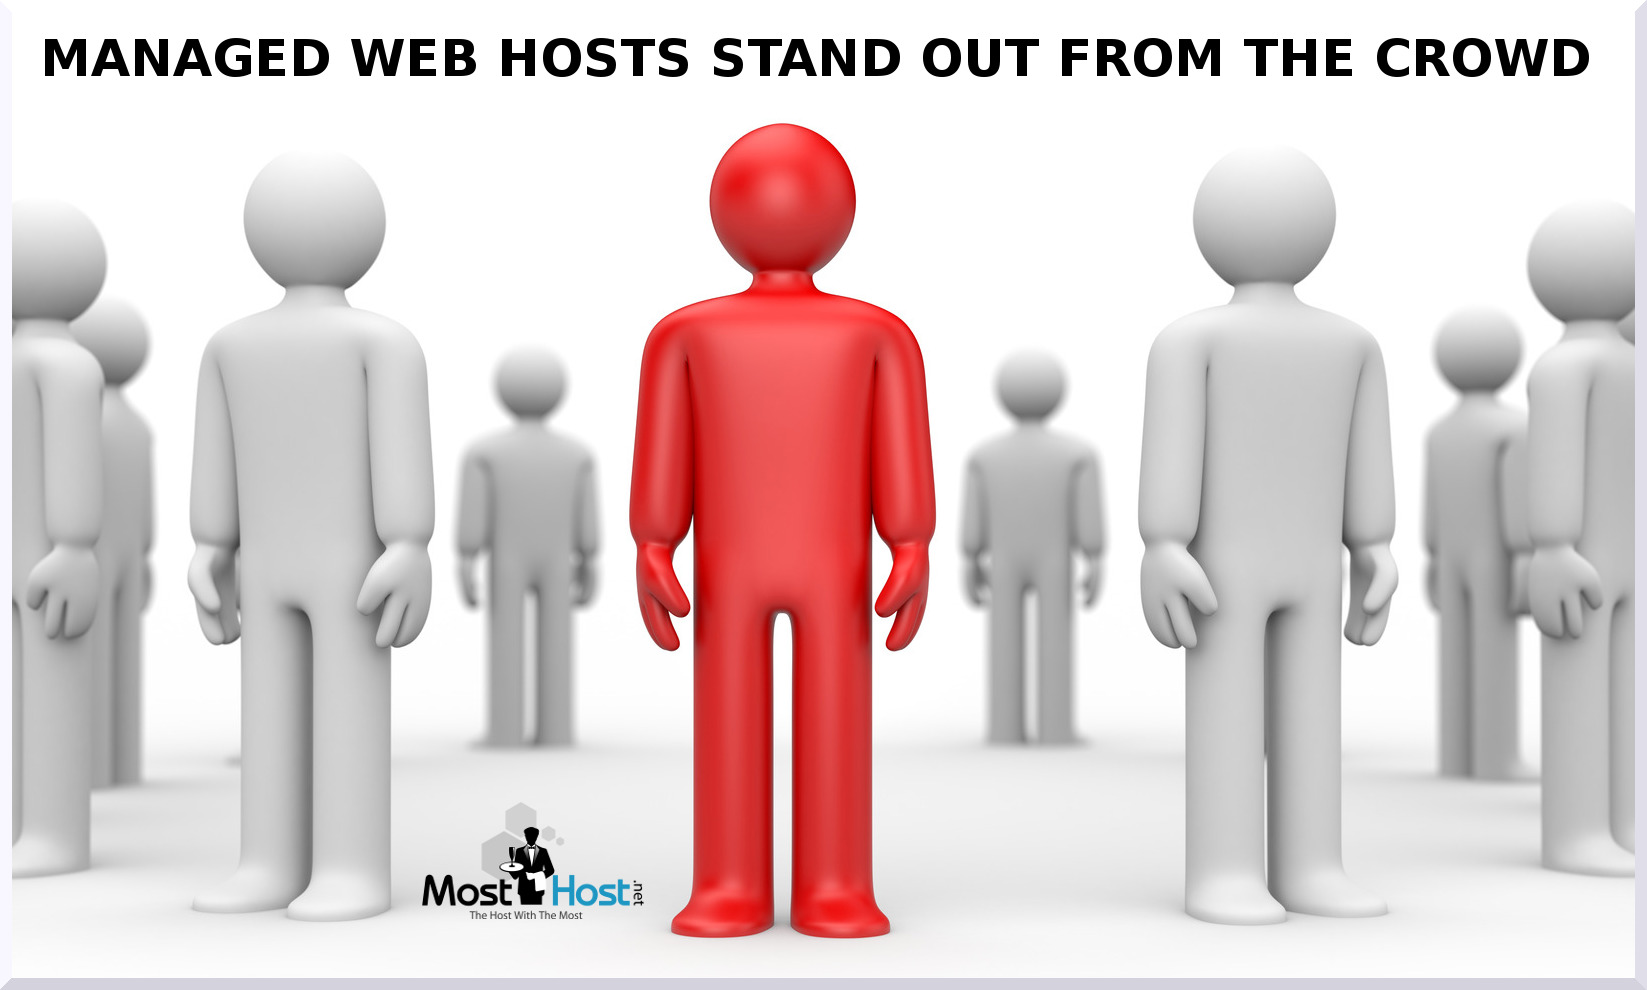 managedhosting Rate picture at Whos Hot Or Not! Pick up the hottest guy or girl!